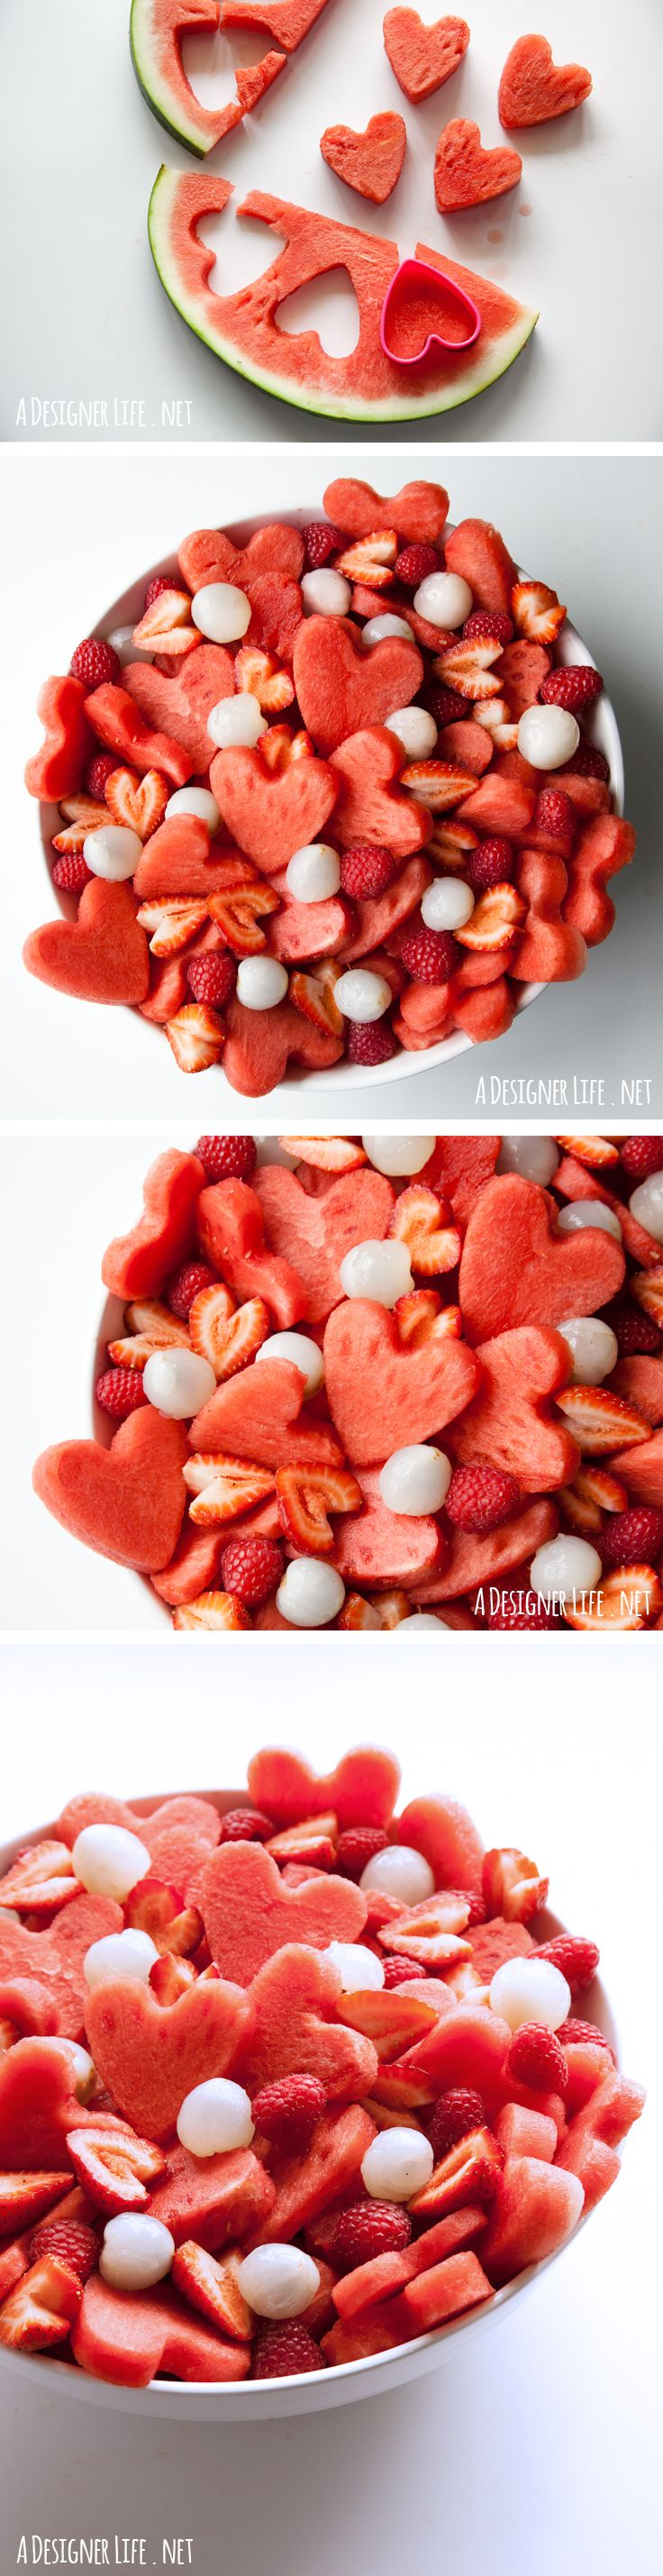 #Watermelon Heart #Fruit Salad